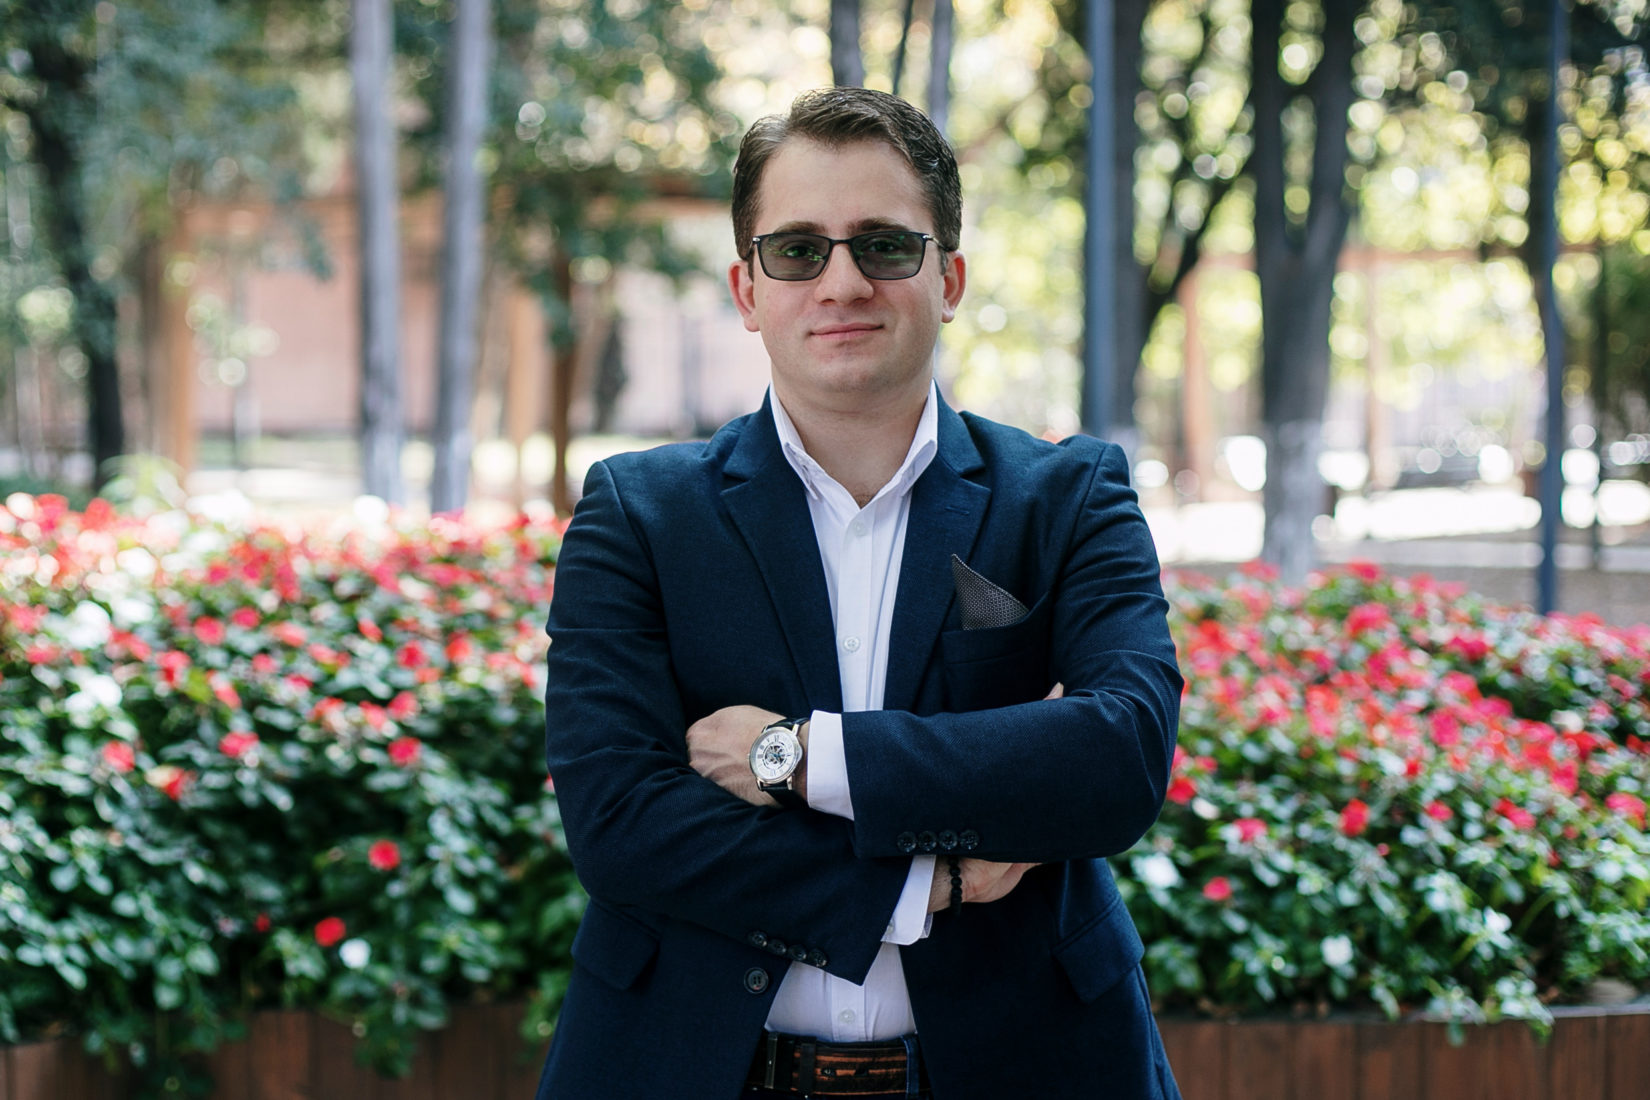 A man in glasses, wearing a suit, smiling, photographed outside in a park.